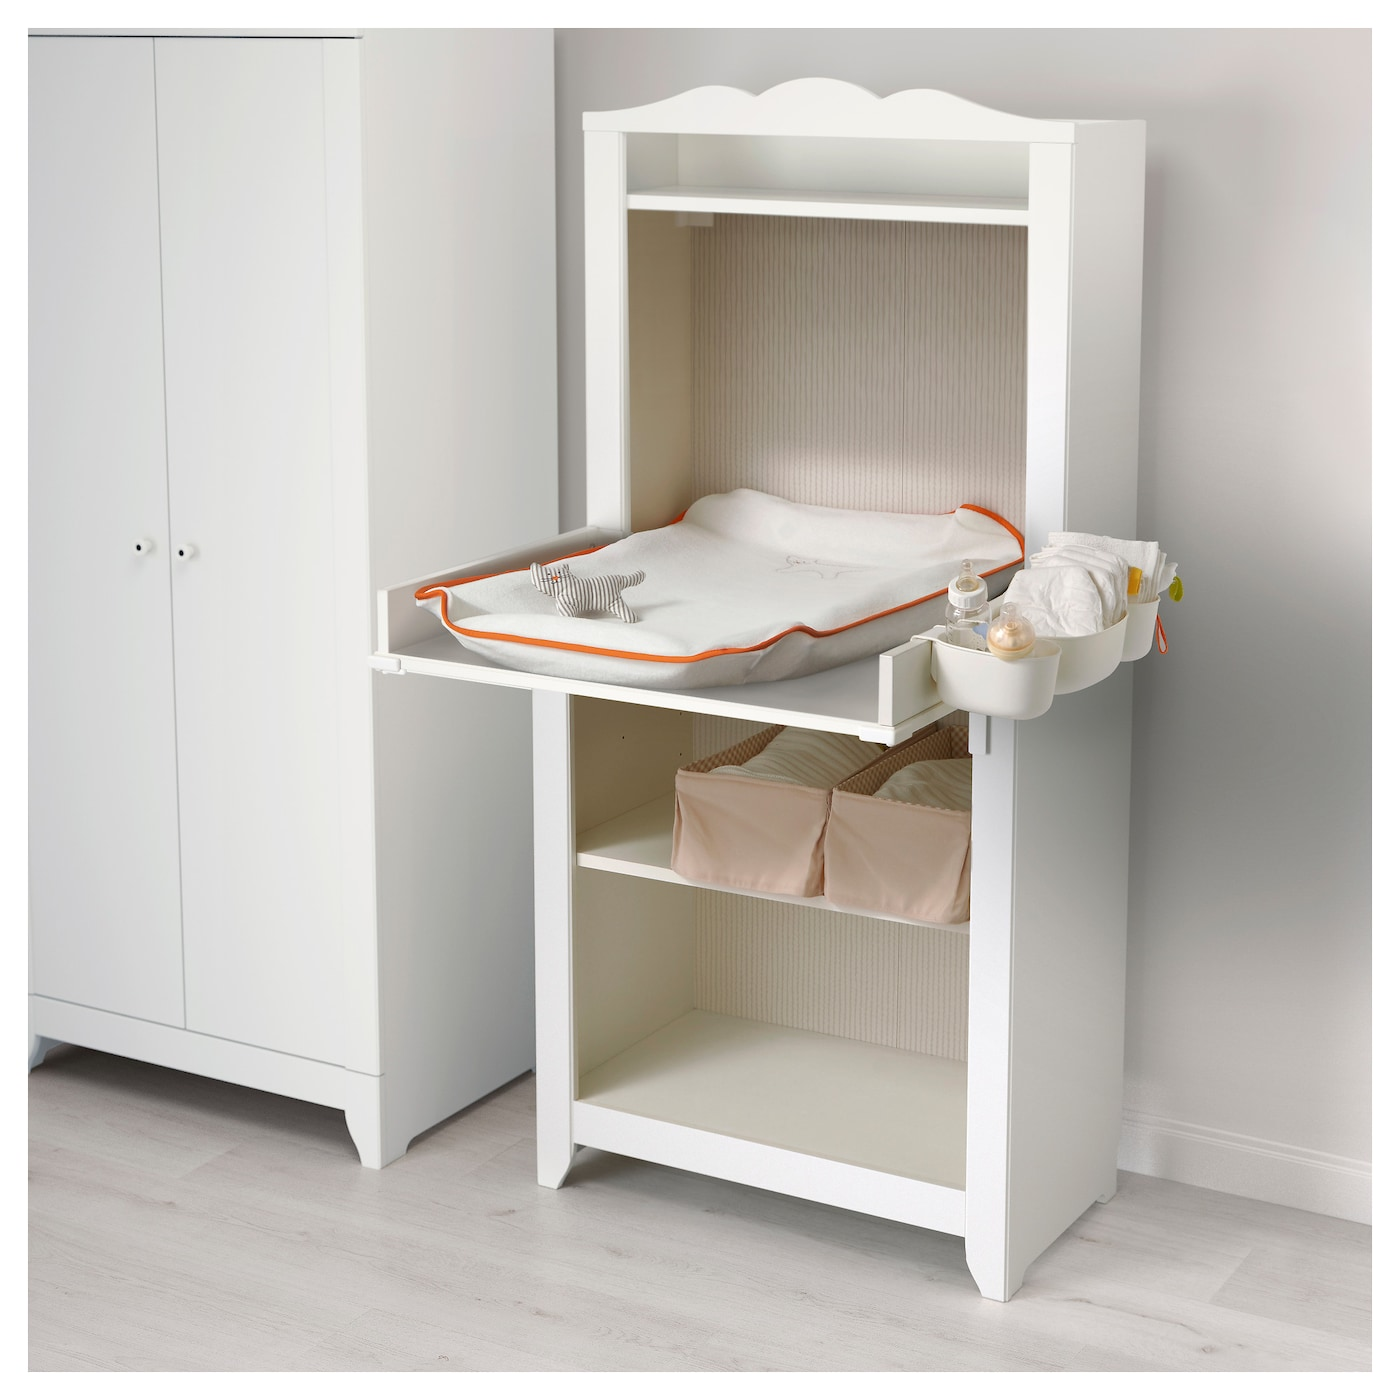 HENSVIK Changing table top White - IKEA